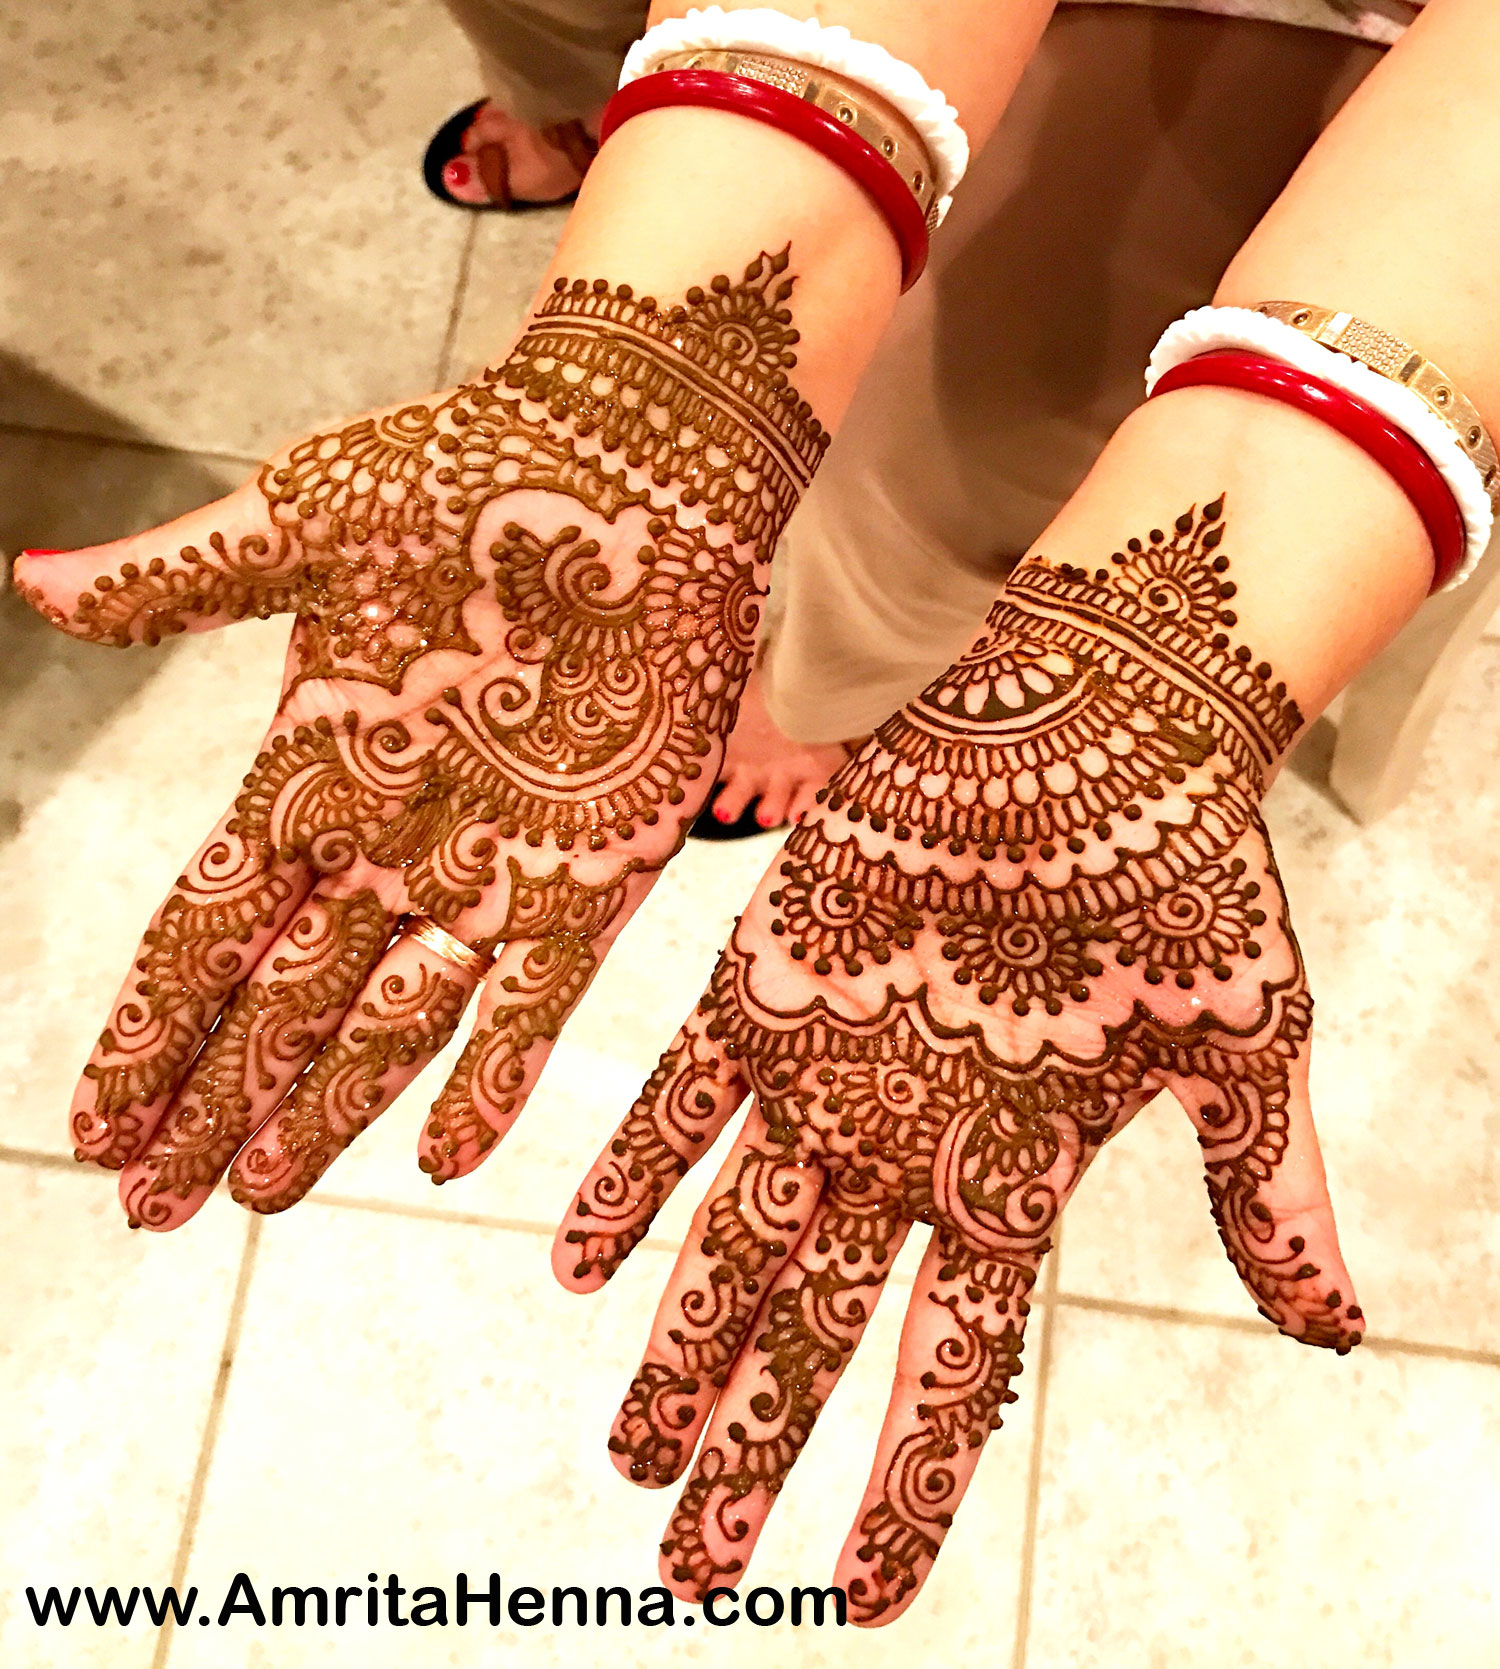 Top 10 Henna Designs For Your Engagement Ceremony Henna Tattoo